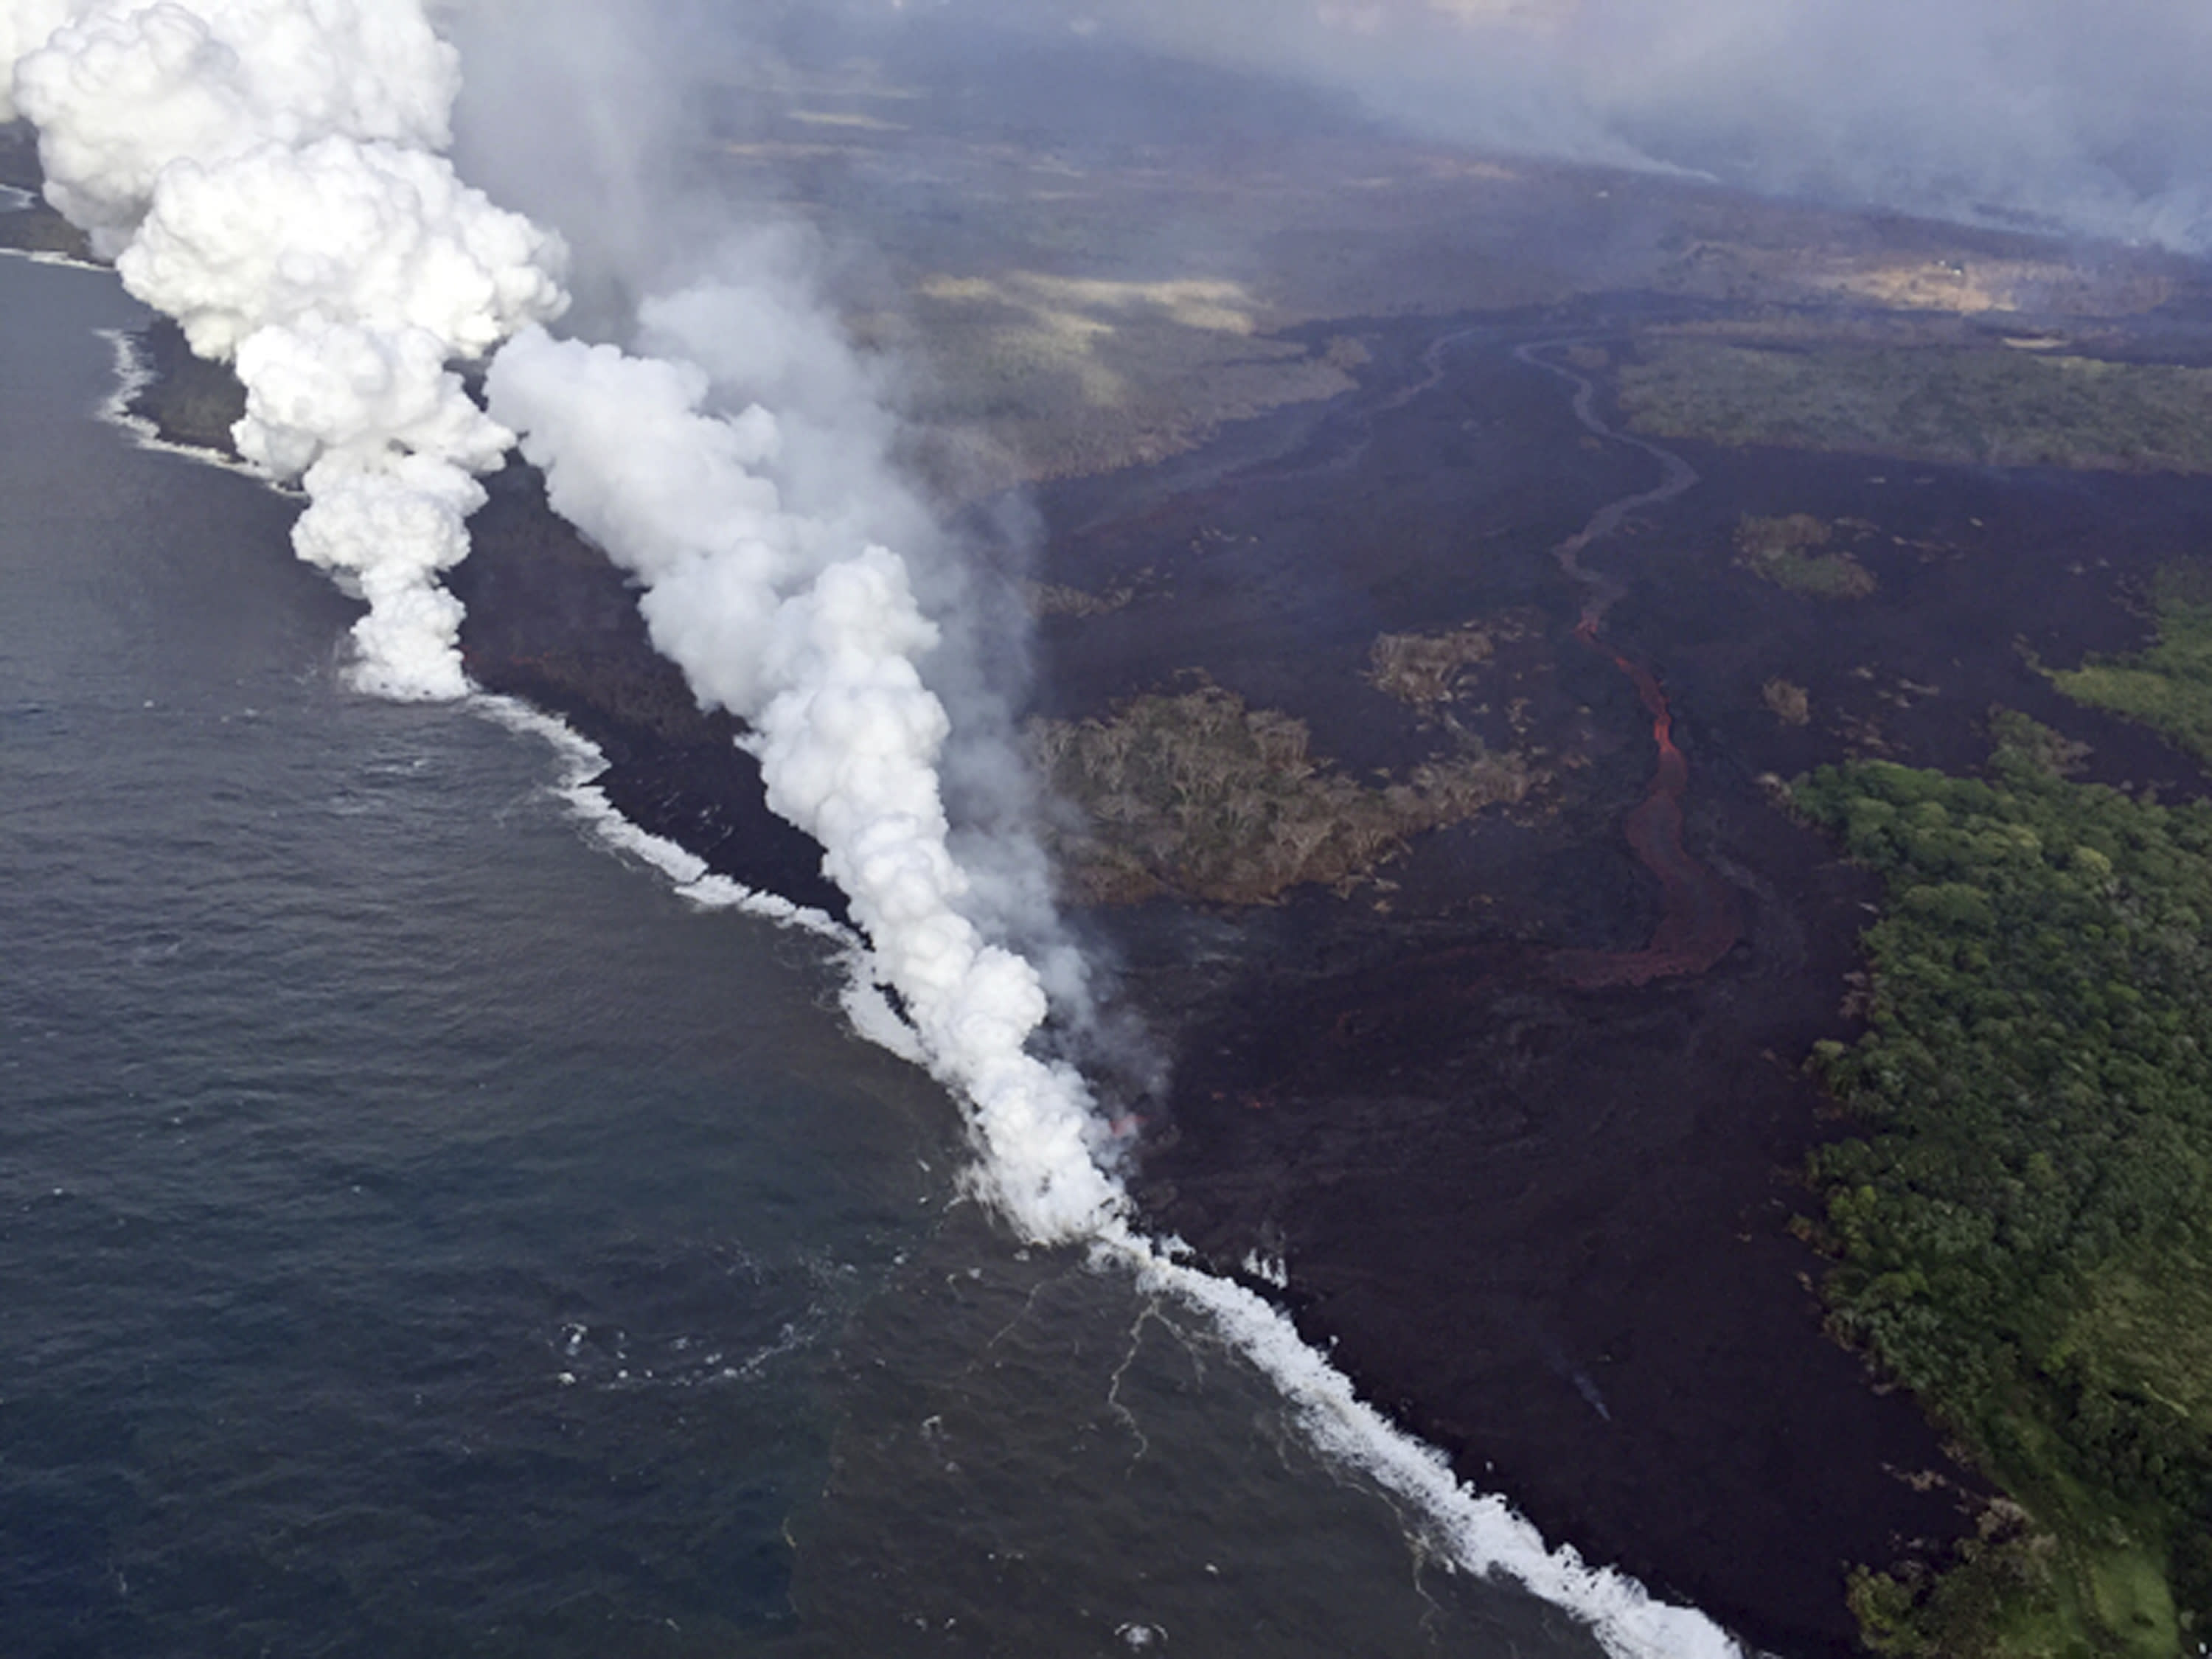 <p>Lava sends up clouds of steam and toxic gases as it enters the Pacific Ocean as Kilauea Volcano continues its eruption cycle near Pahoa on the island of Hawaii Friday, May 25, 2018. (Photo: U.S. Geological Survey via AP) </p>